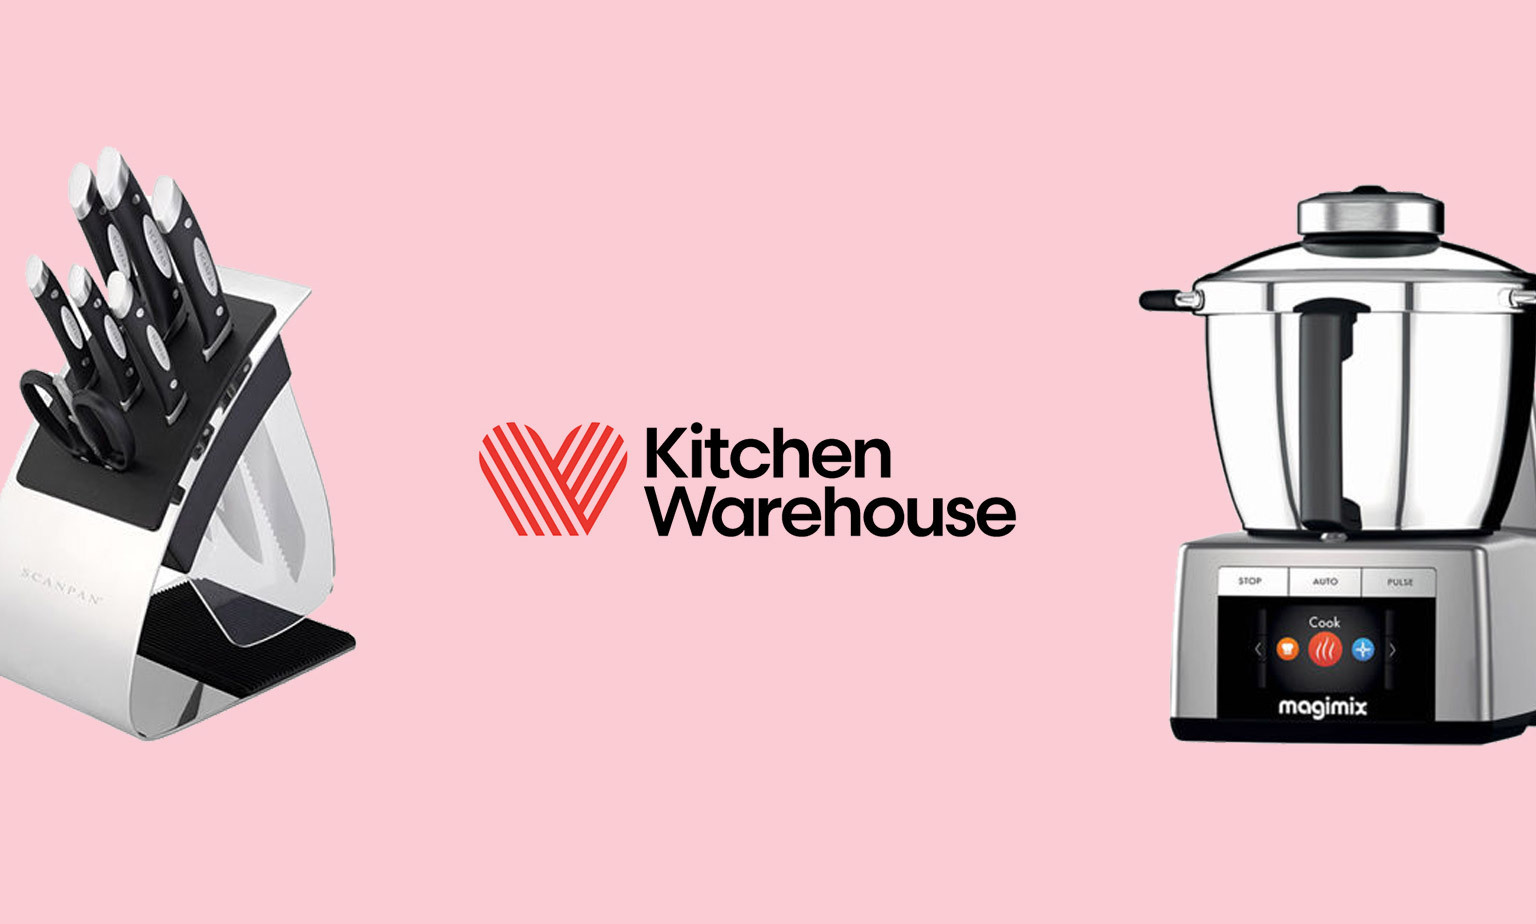 20% off Kitchen Warehouse*